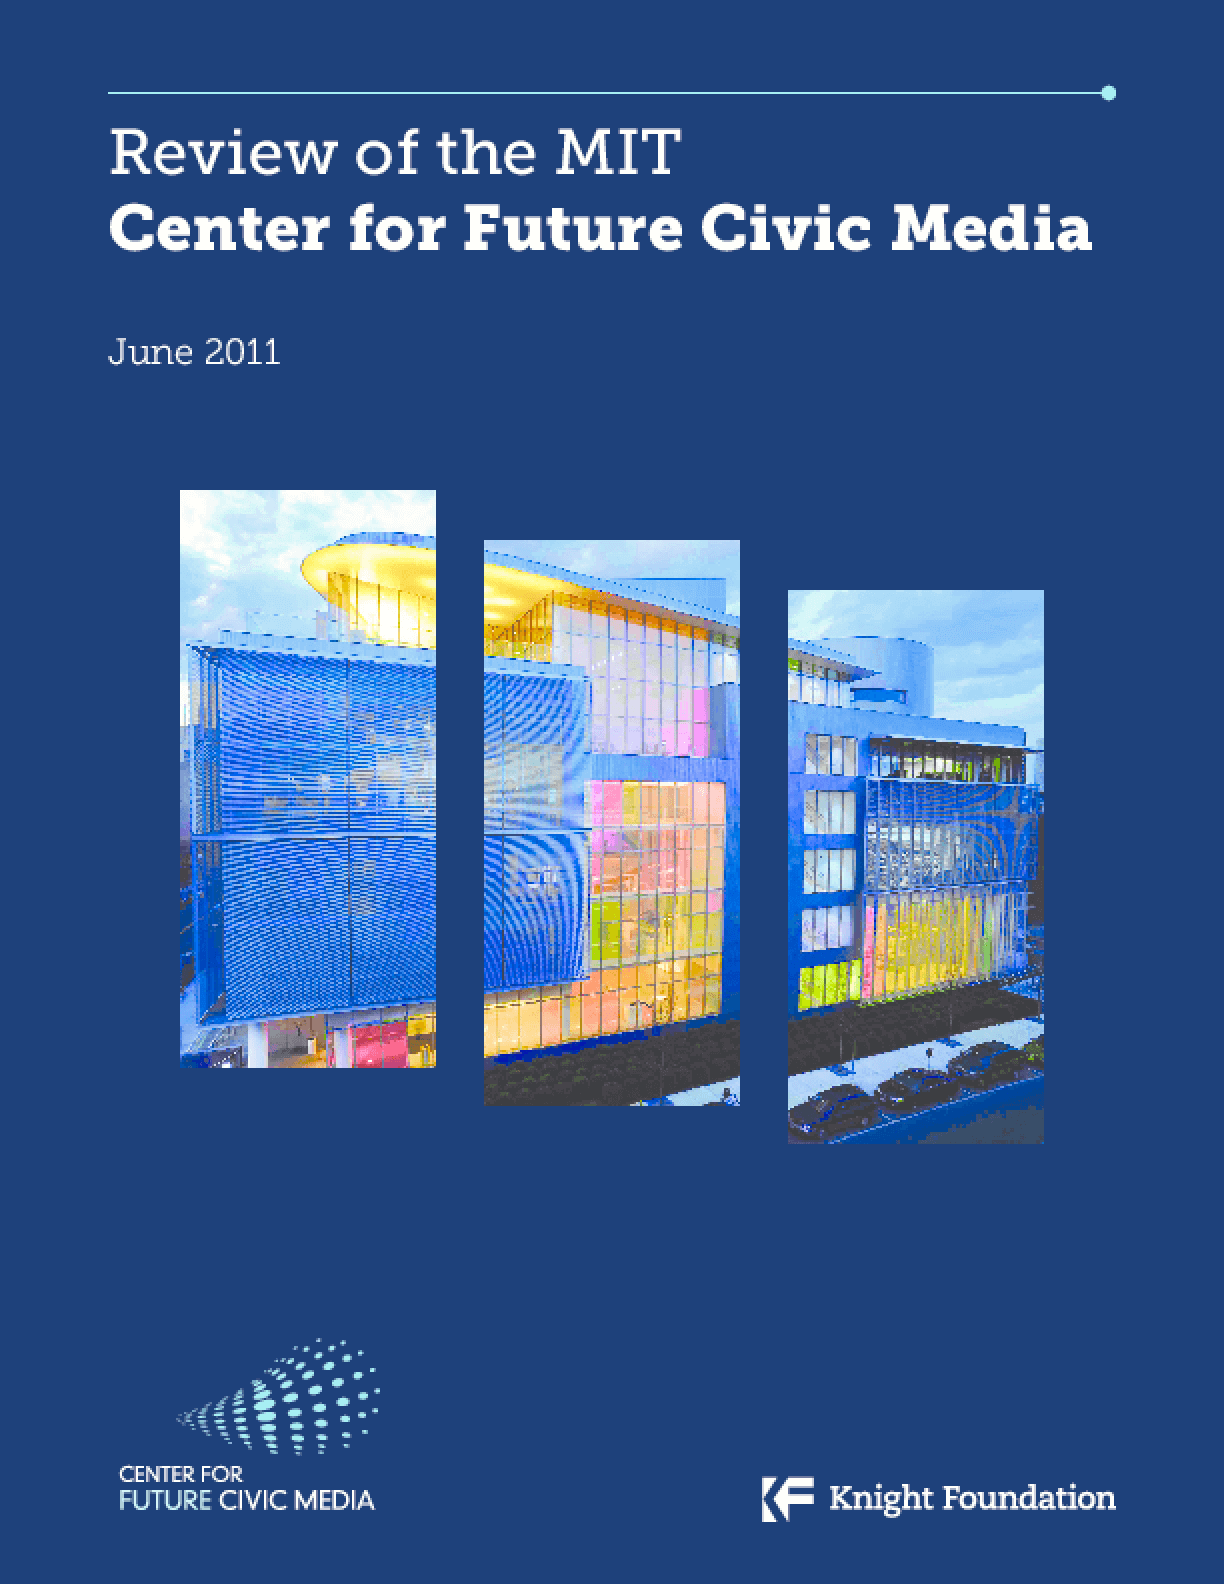 Review of the MIT Center for Future Civic Media